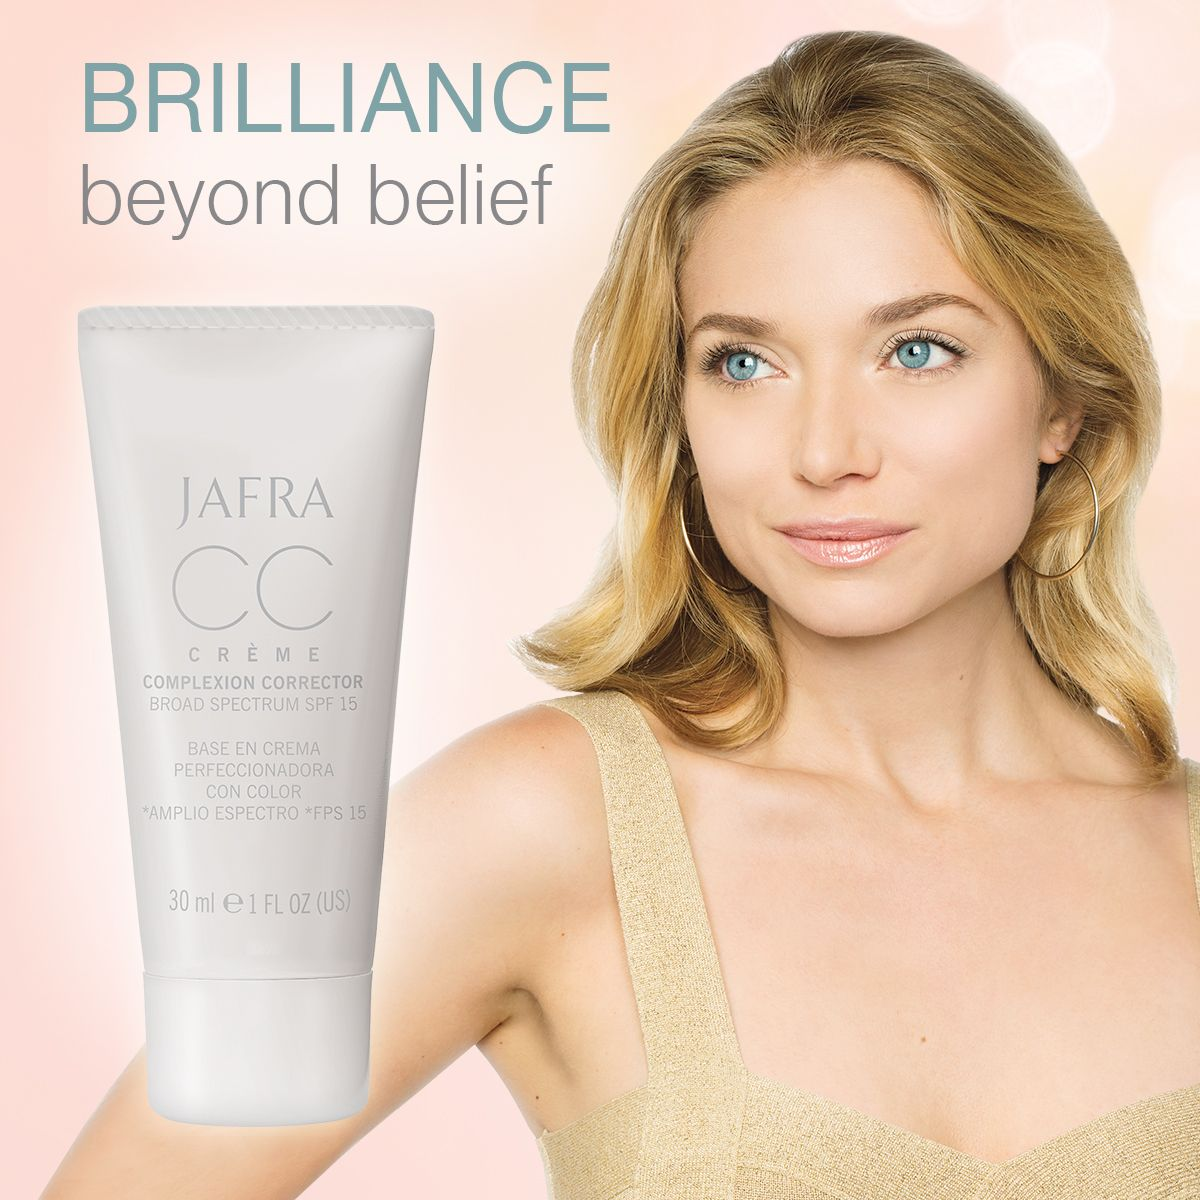 JAFRA's CC Crème Complexion Corrector gives you skin care and Makeup in 1 simple step!